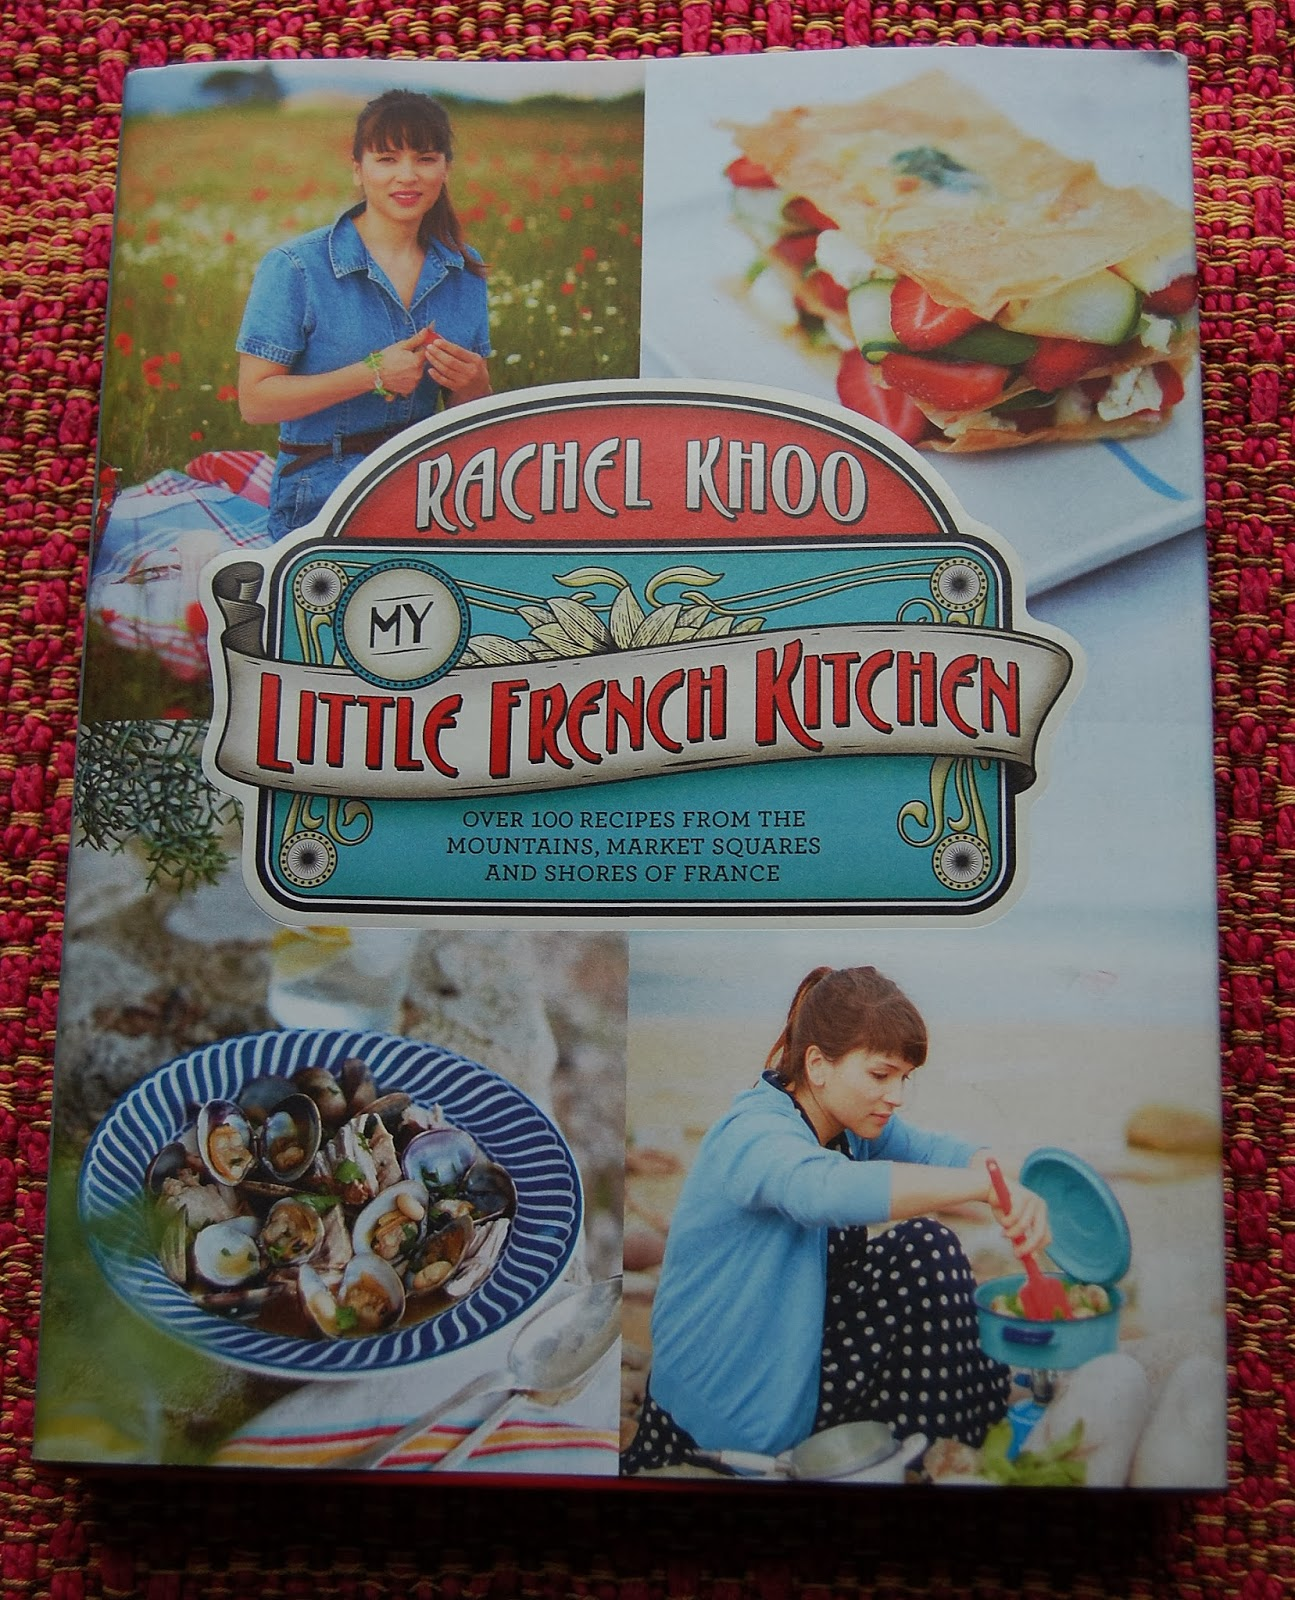 Mugofstrongtea : Review Of 'My Little French Kitchen' By